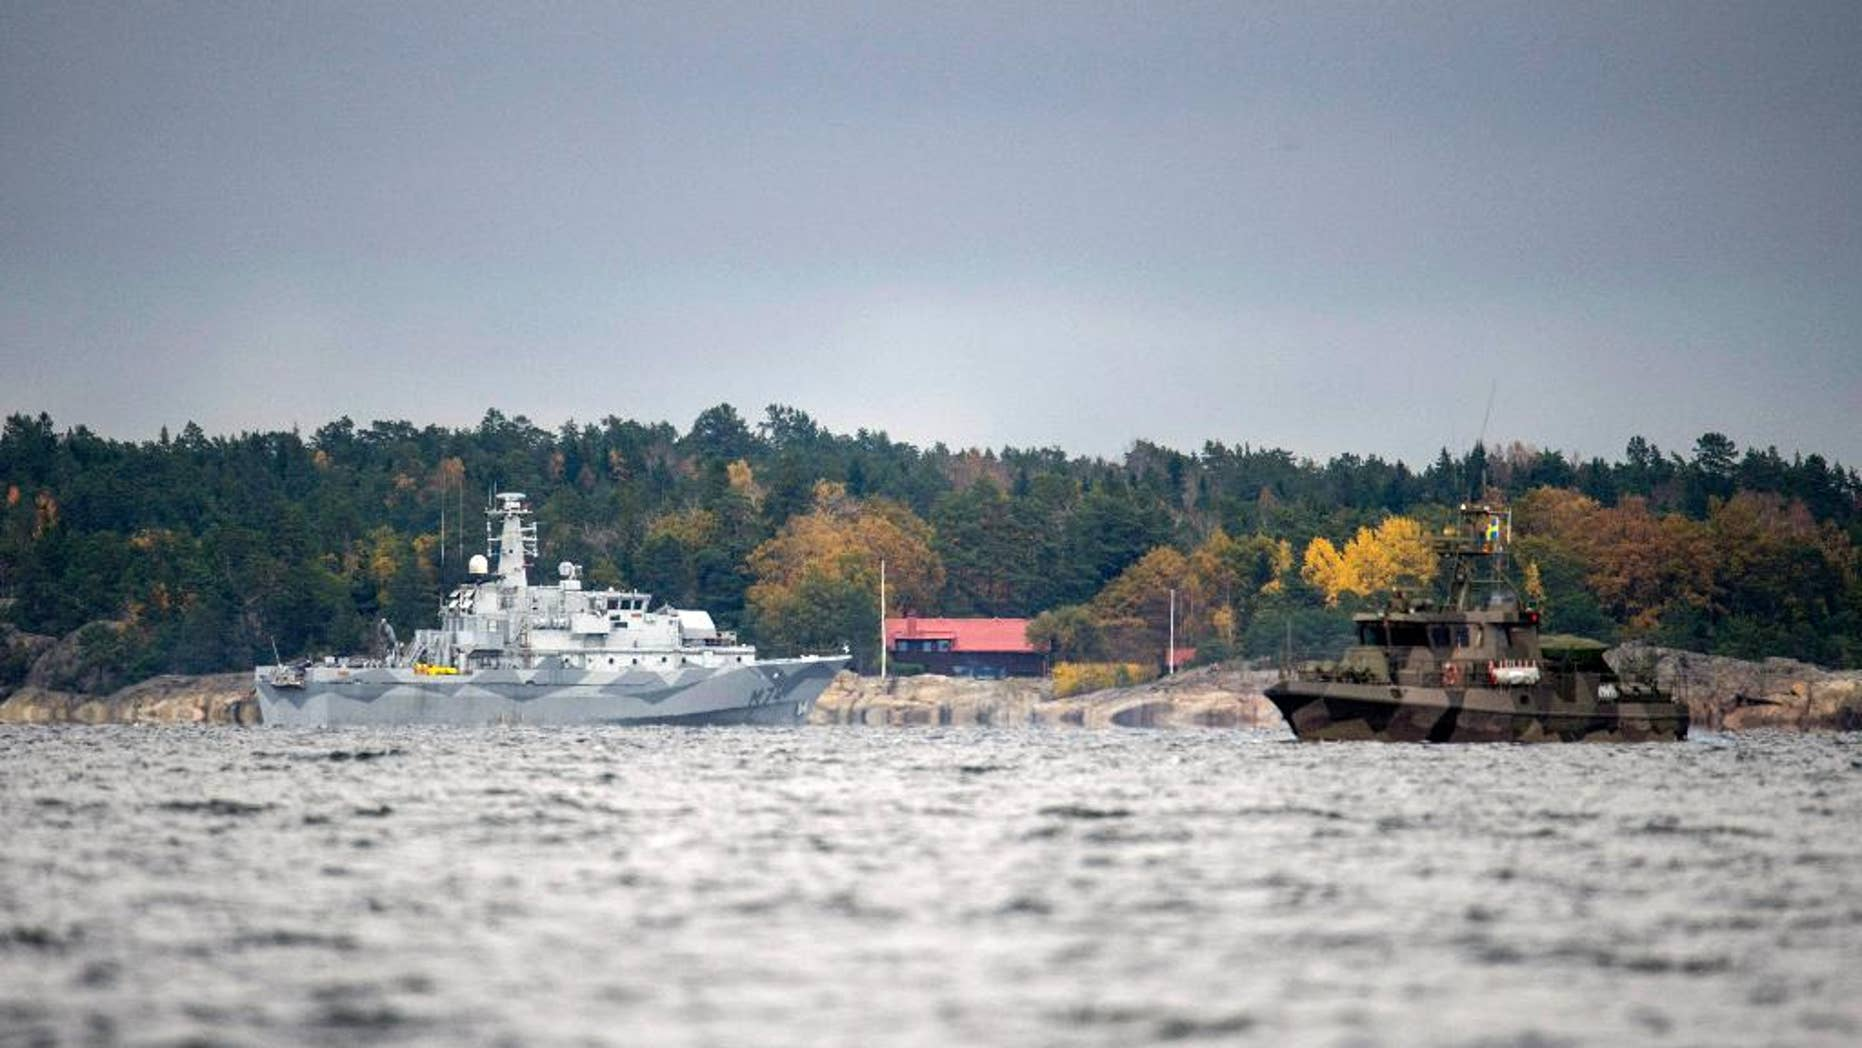 The Swedish minesweeper HMS Kullen, left, and a guard boat in Namdo Bay, Sweden,Tuesday, Oct. 21, 2014 on their fifth day of searching for a suspected foreign vessel in the Stockholm archipelago. The navy has demanded a 1000-meter (yard) no-go radius around naval vessels taking part in the current operation. (AP Photo/TT News Agency, Fredrik Sandberg)   SWEDEN OUT